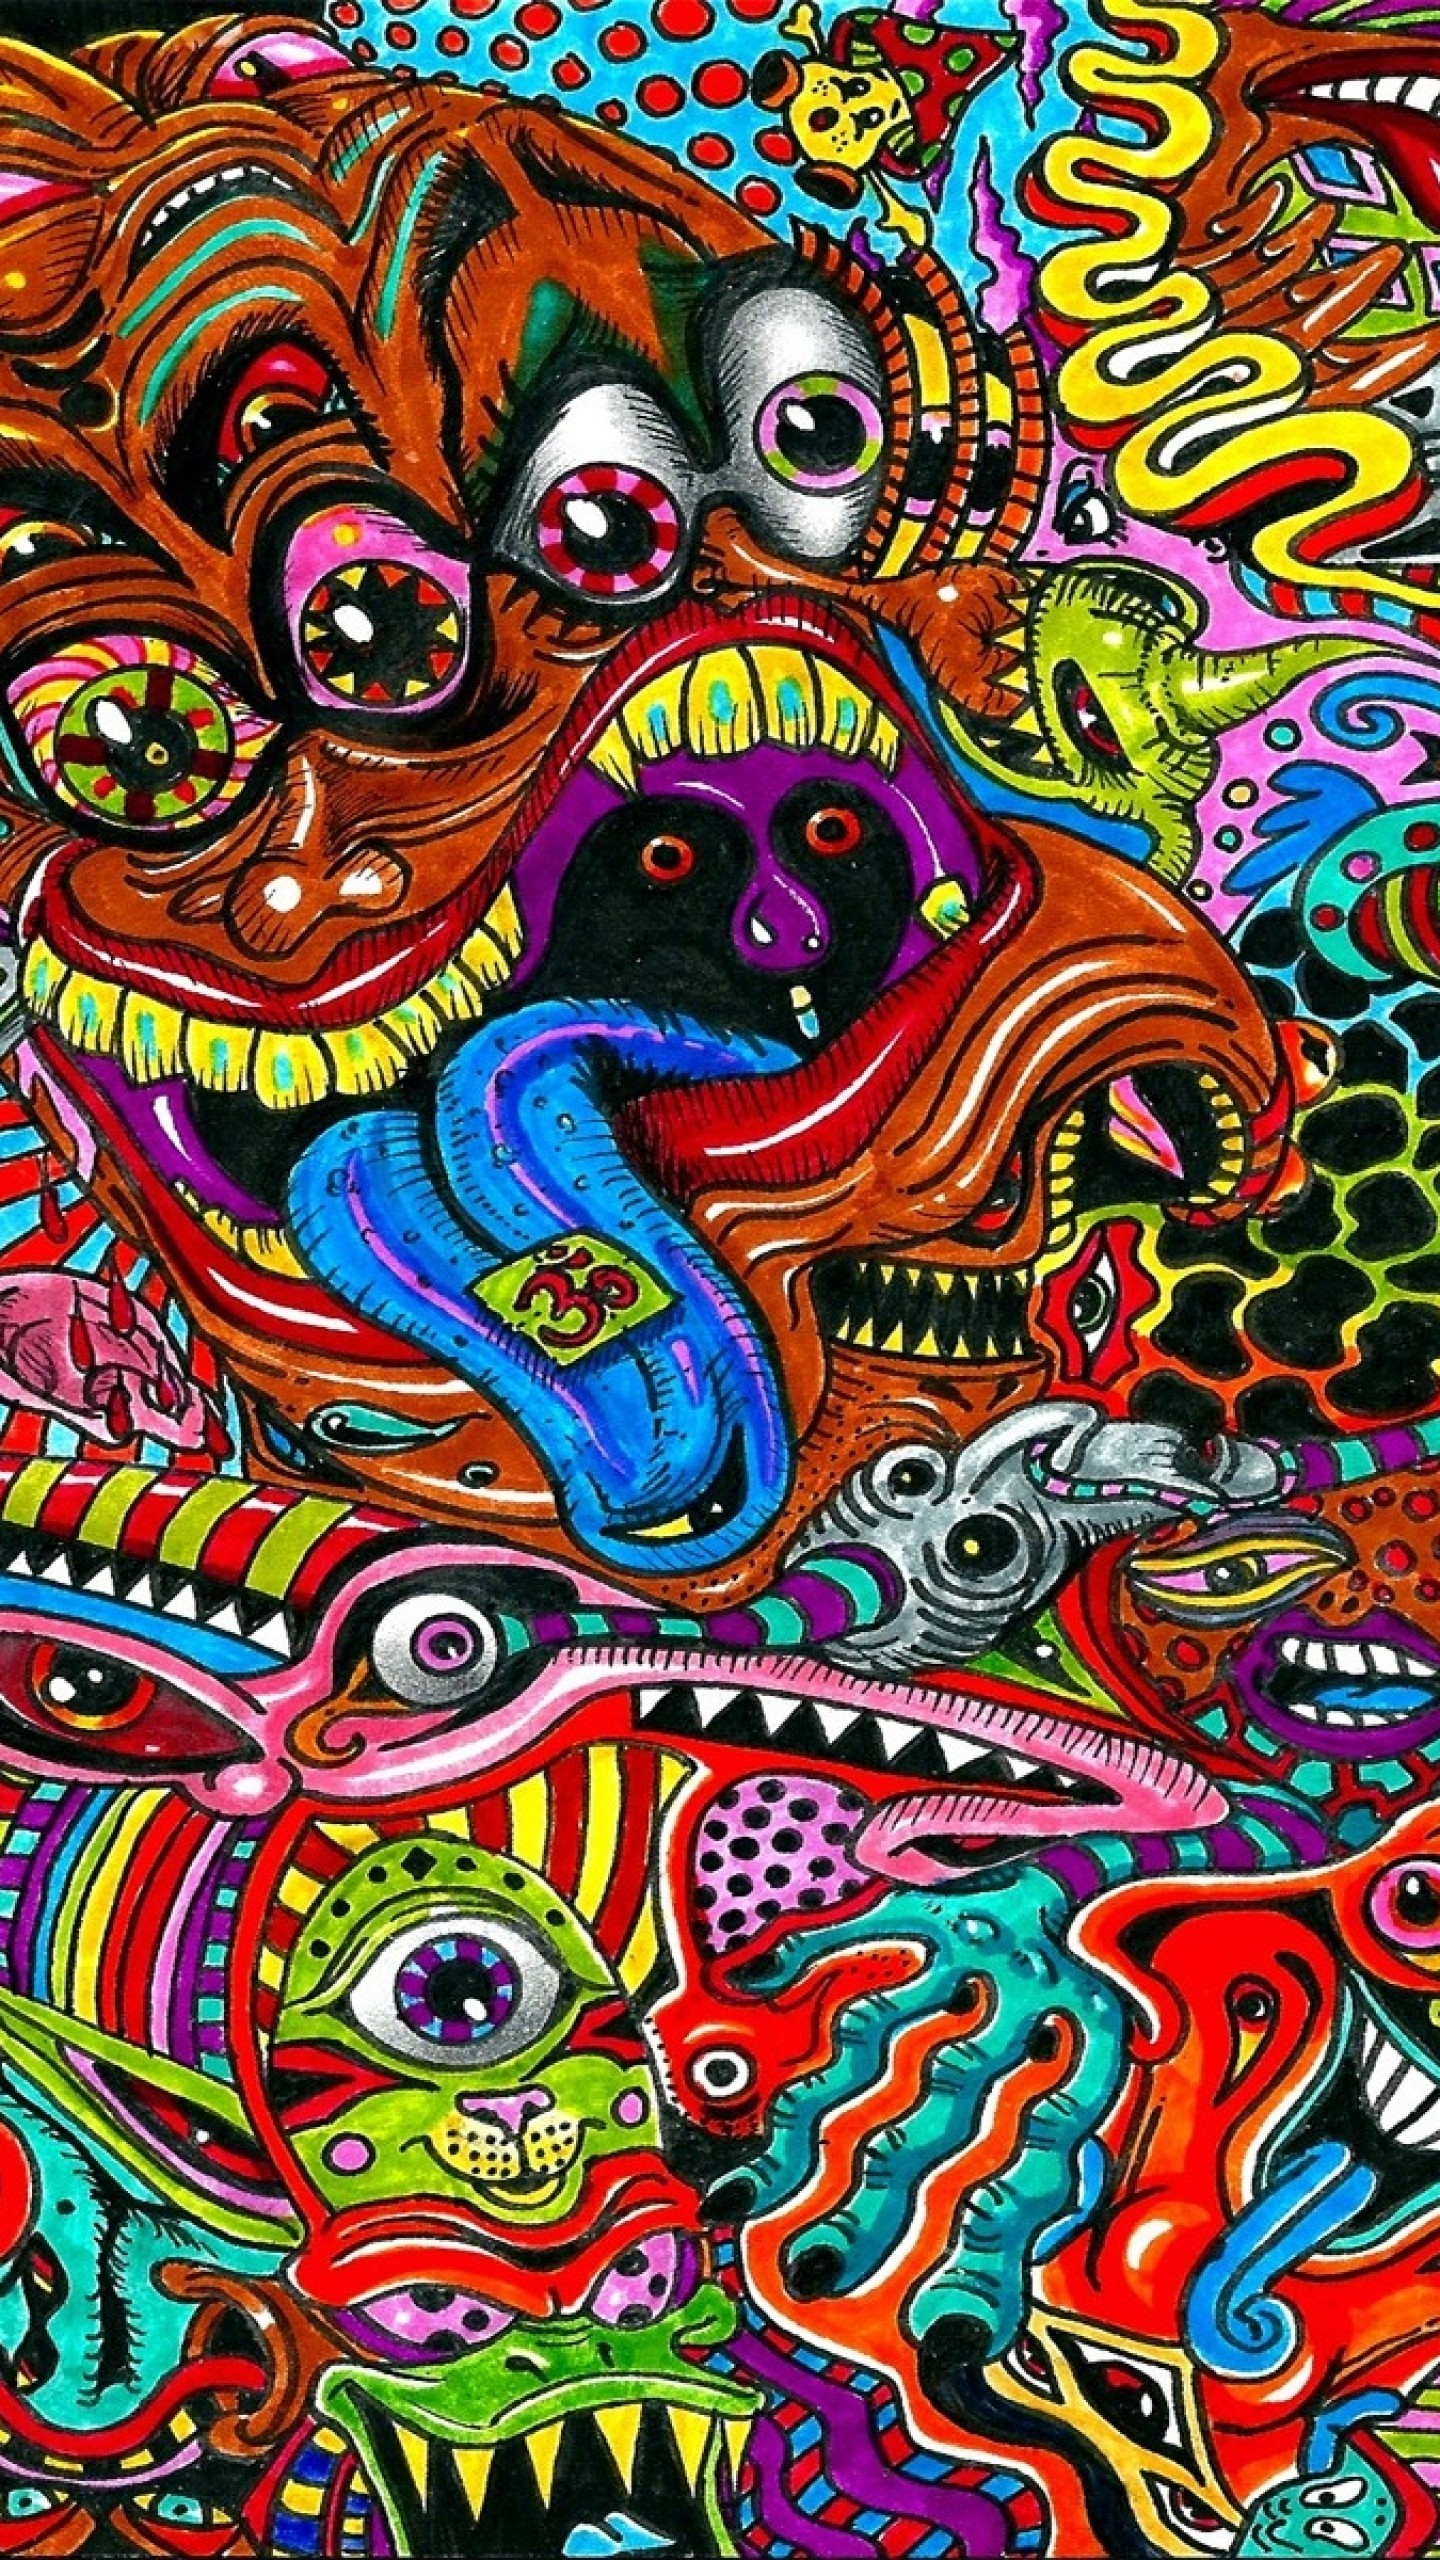 1440x2560 Psychedelic Backgrounds Wallpaper Cave Source ·  Wallpaper drawing  surreal colorful psychedelic